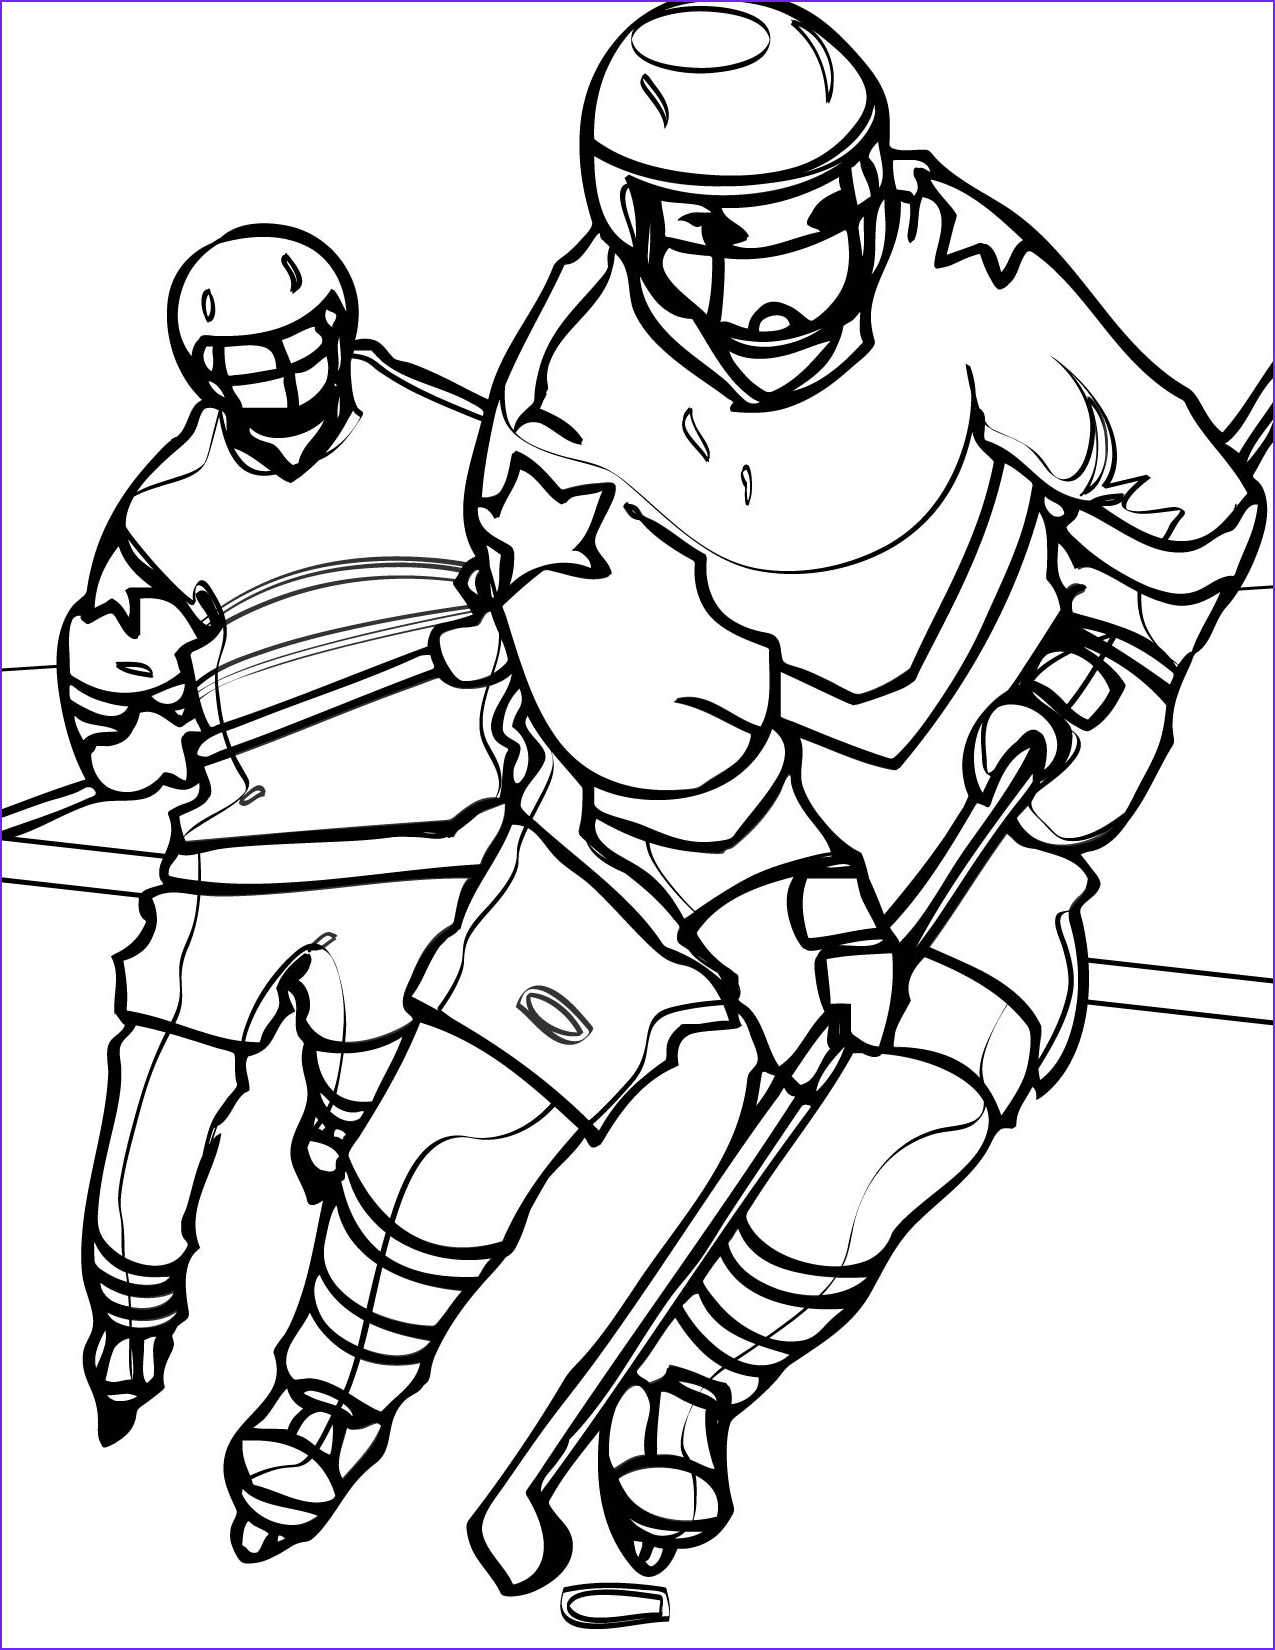 Sports coloring pages hockey ColoringStar